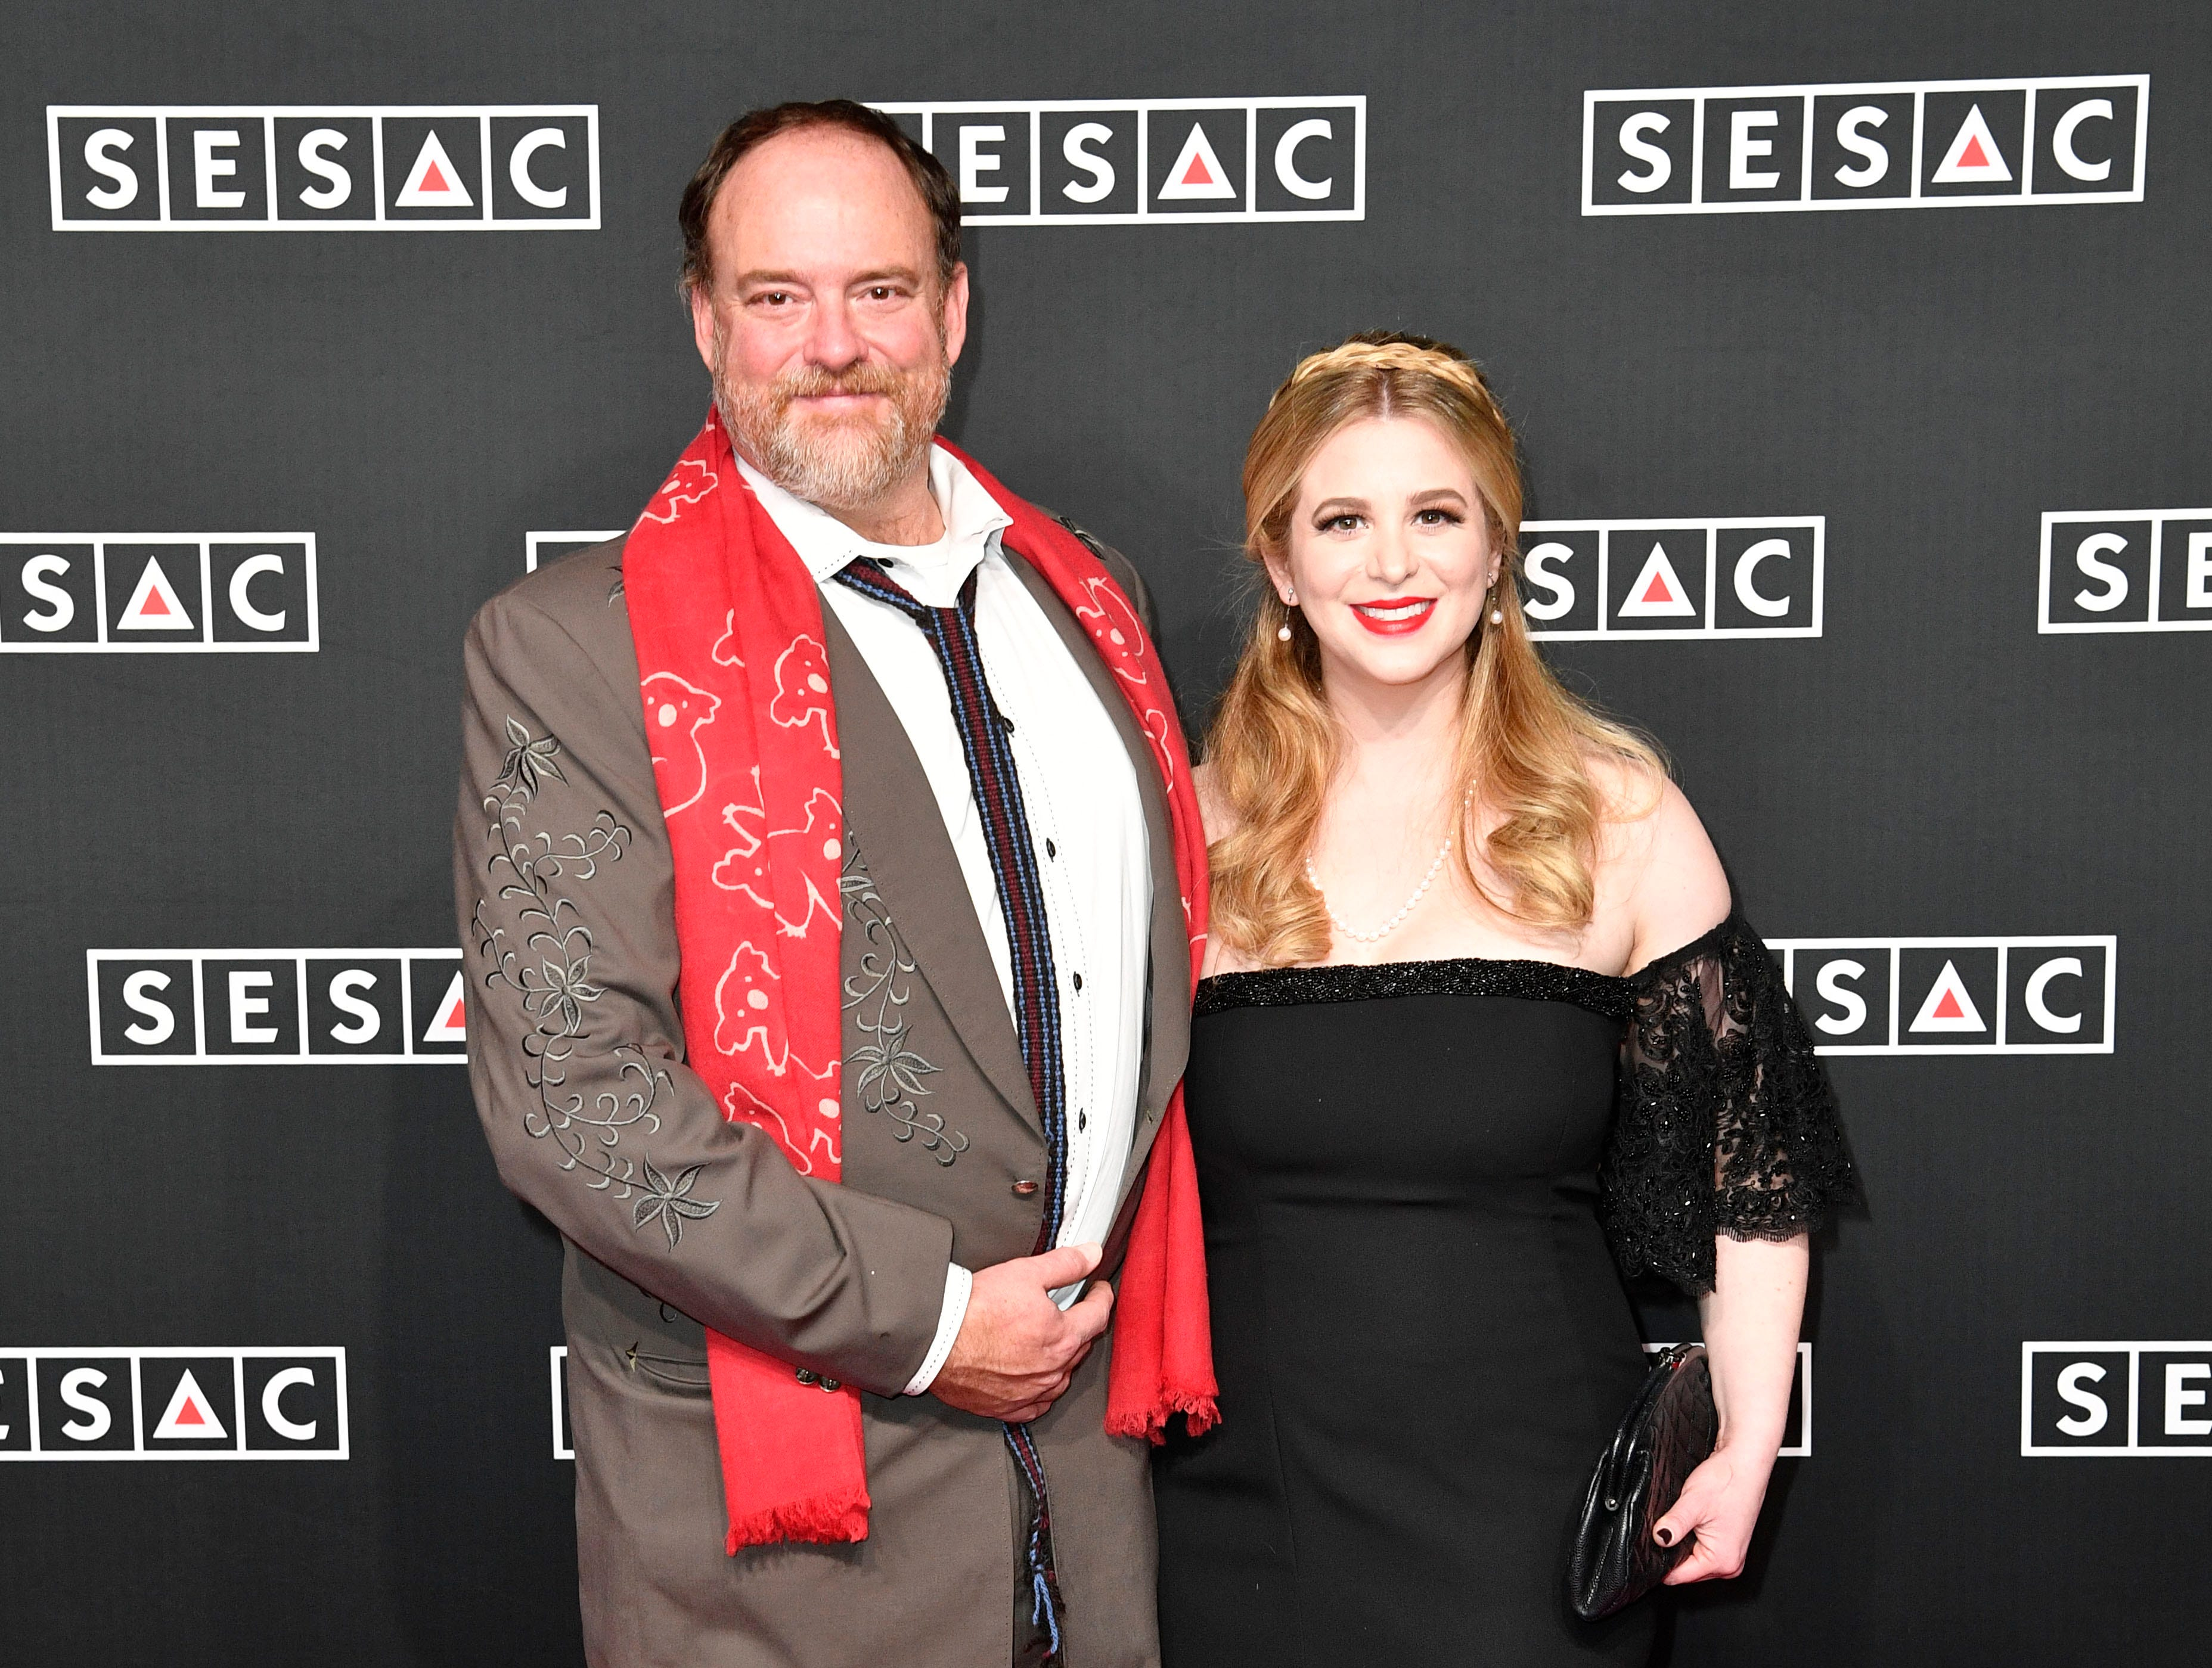 John Carter Cast and Ana Christina Cash on the red carpet at the SESAC Nashville Music Awards at the Country Music Hall of Fame and Museum Sunday Nov. 11, 2018, in Nashville, Tenn.